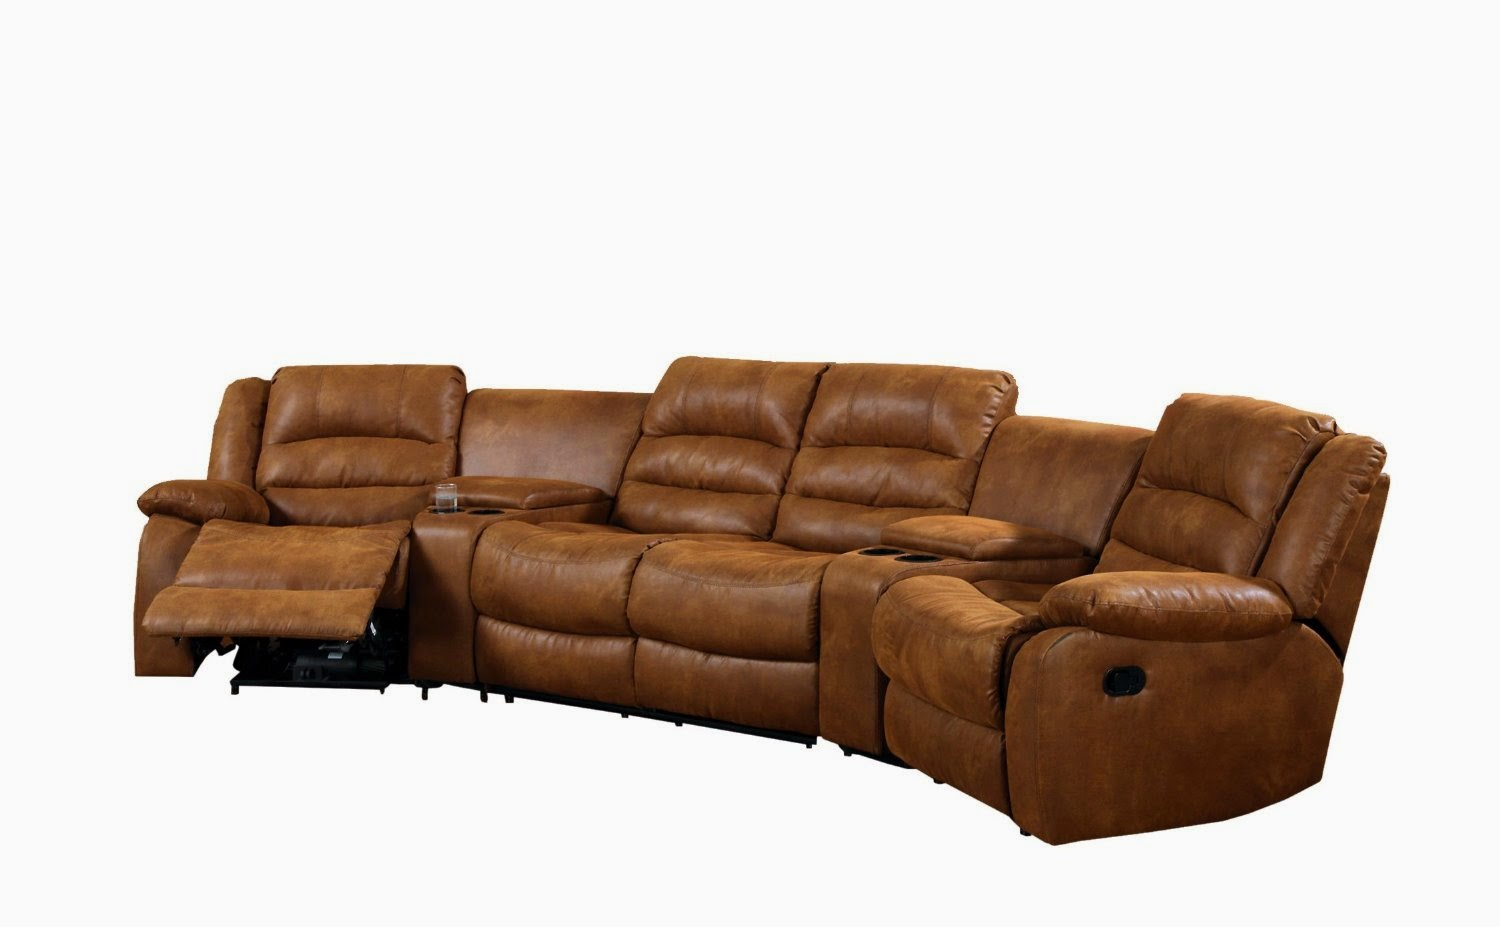 Cheap reclining sofas sale brown reclining sofa set for Sofa set for sale cheap